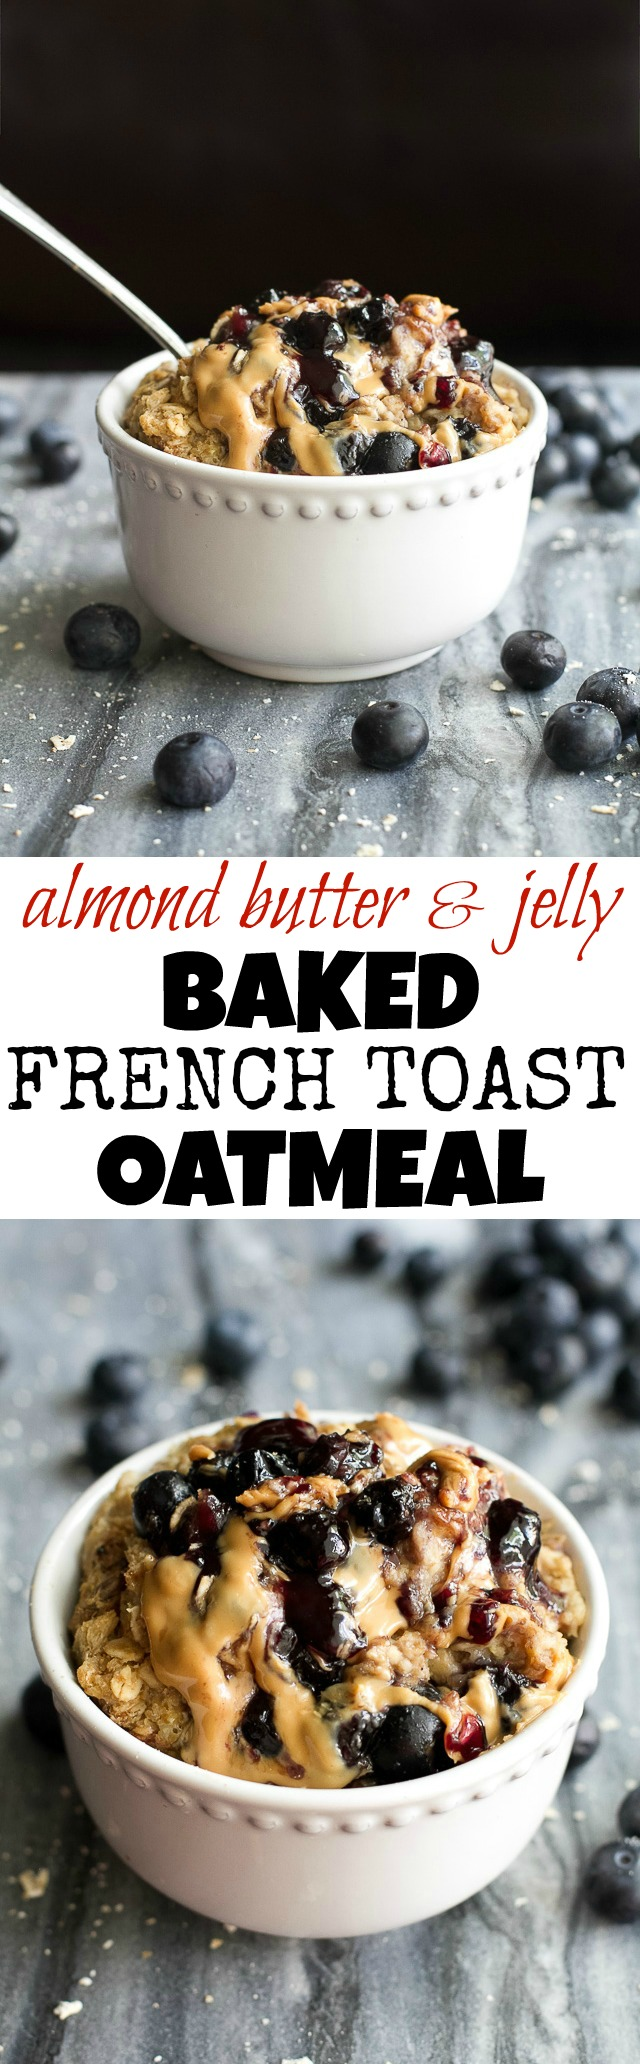 Baked AB&J French Toast Oatmeal - guaranteed to get you out of bed in the morning with it's soft, fluffy, and slightly ooey, gooey texture! This recipe is vegan, easily made gluten-free, and loaded with AB&J (or PB&J) flavour in every bite! | runningwithspoons.com